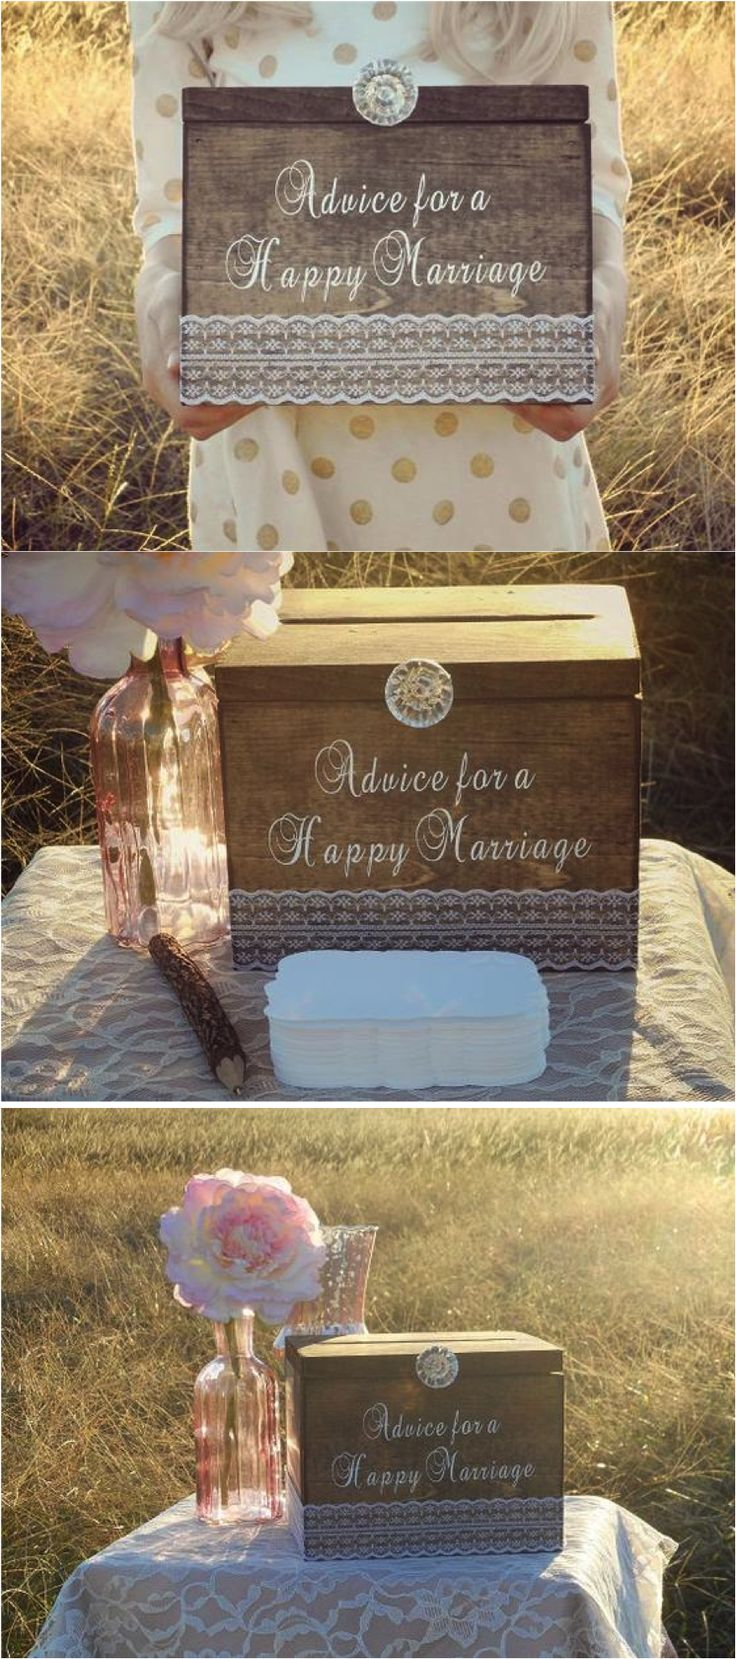 "As you say your I do's, don't forget to collect all the wisdom from your loved ones about tips & tricks for a long happy marriage. This beautiful rustic ""Advice for a Happy Marriage"" box comes with 100 cards and will be a treasure trove of wisdom you can always refer to, in times good & bad. 